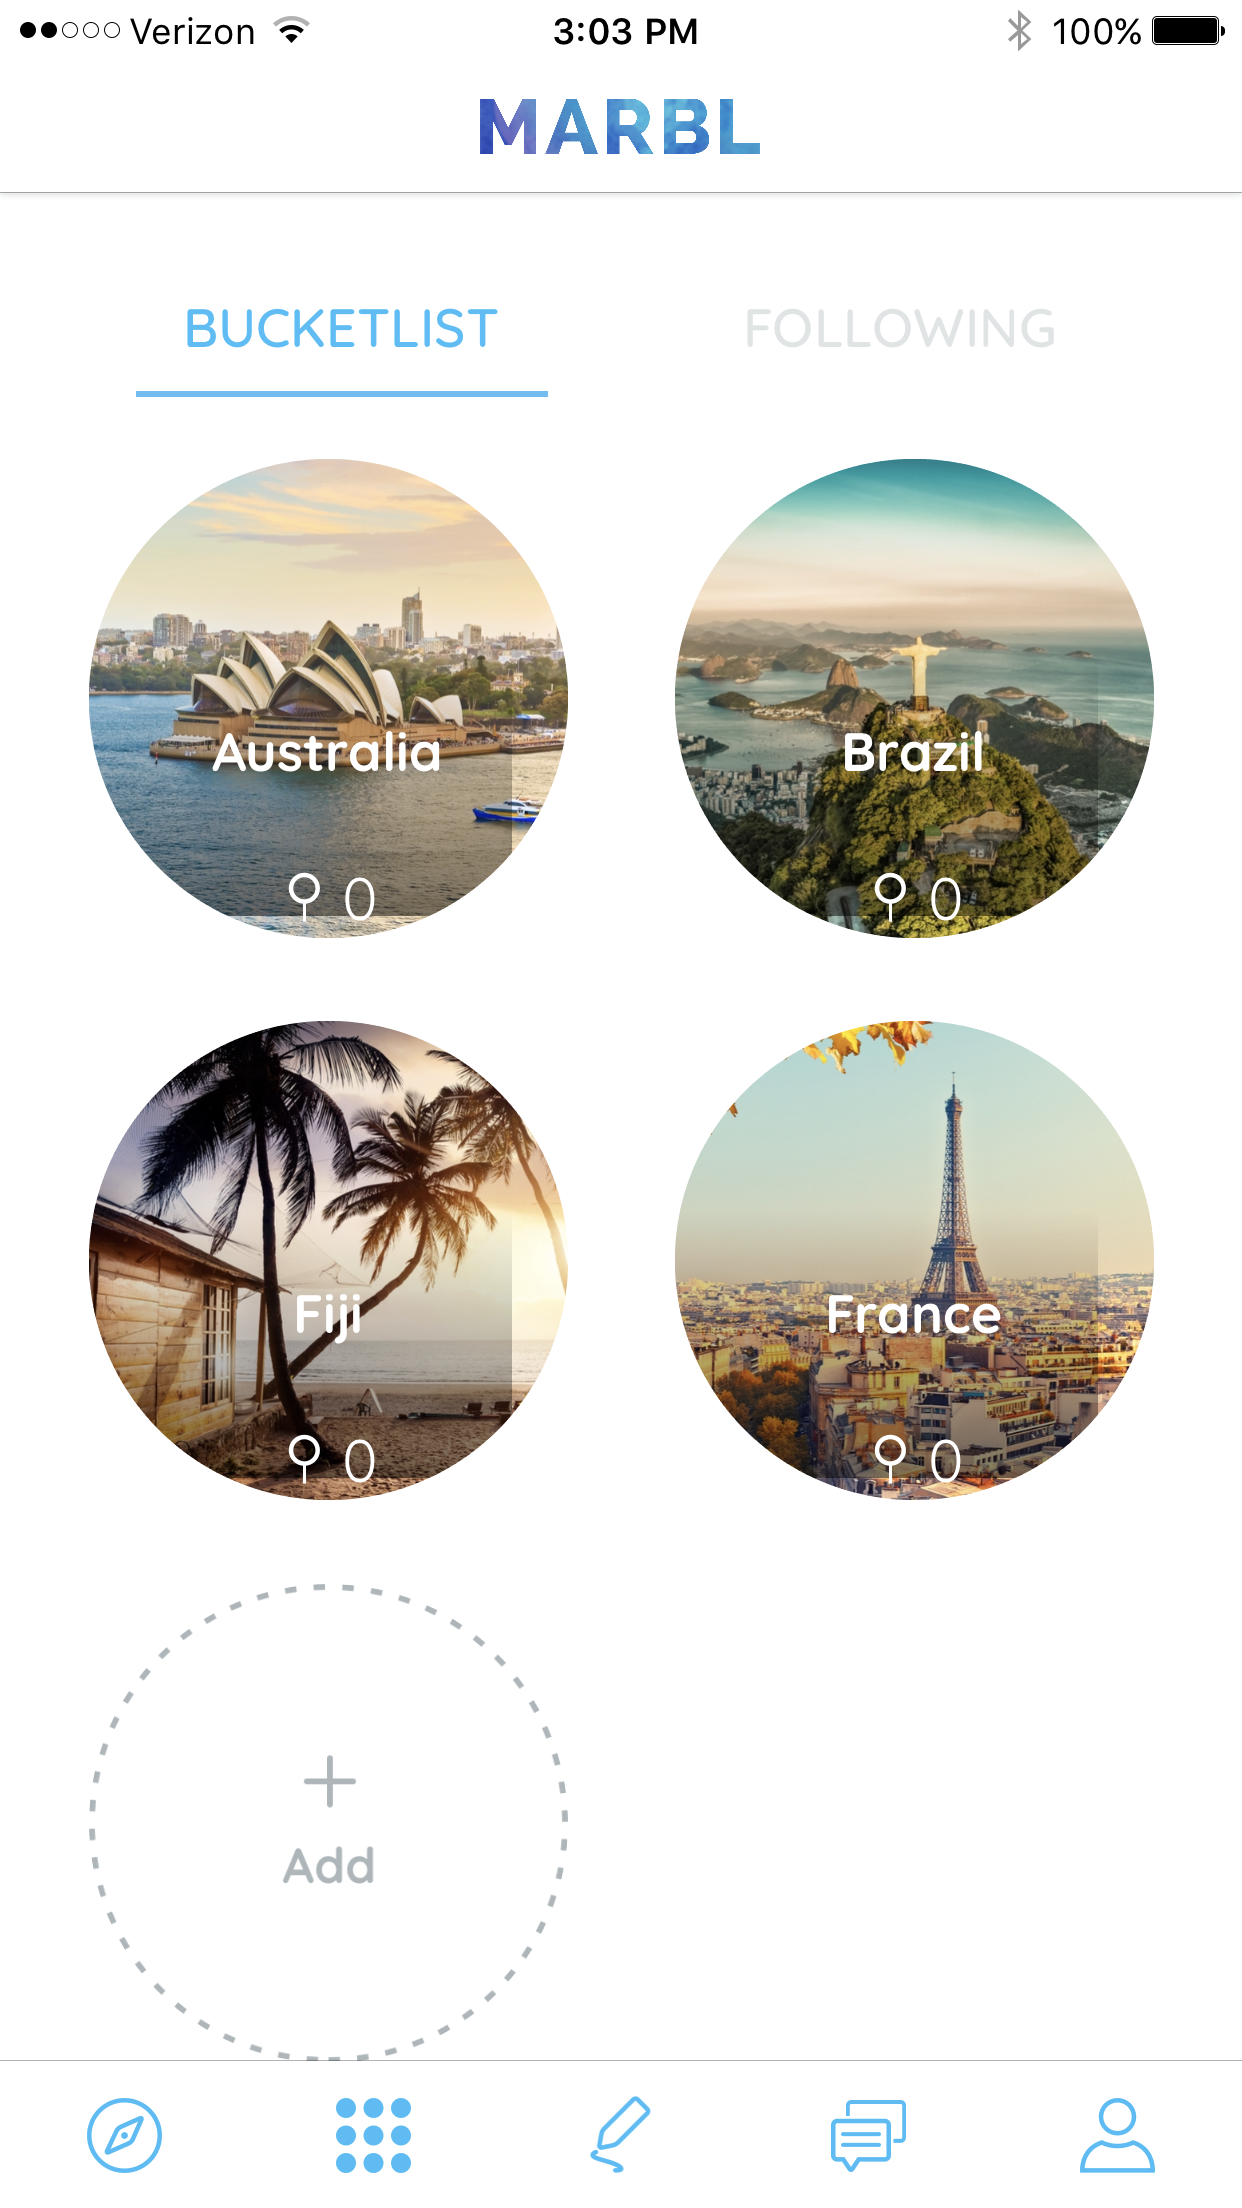 Planning A Trip Tools Best Travel Apps Downloads Electrical Schematics Dreams Bucket Lists The Journey